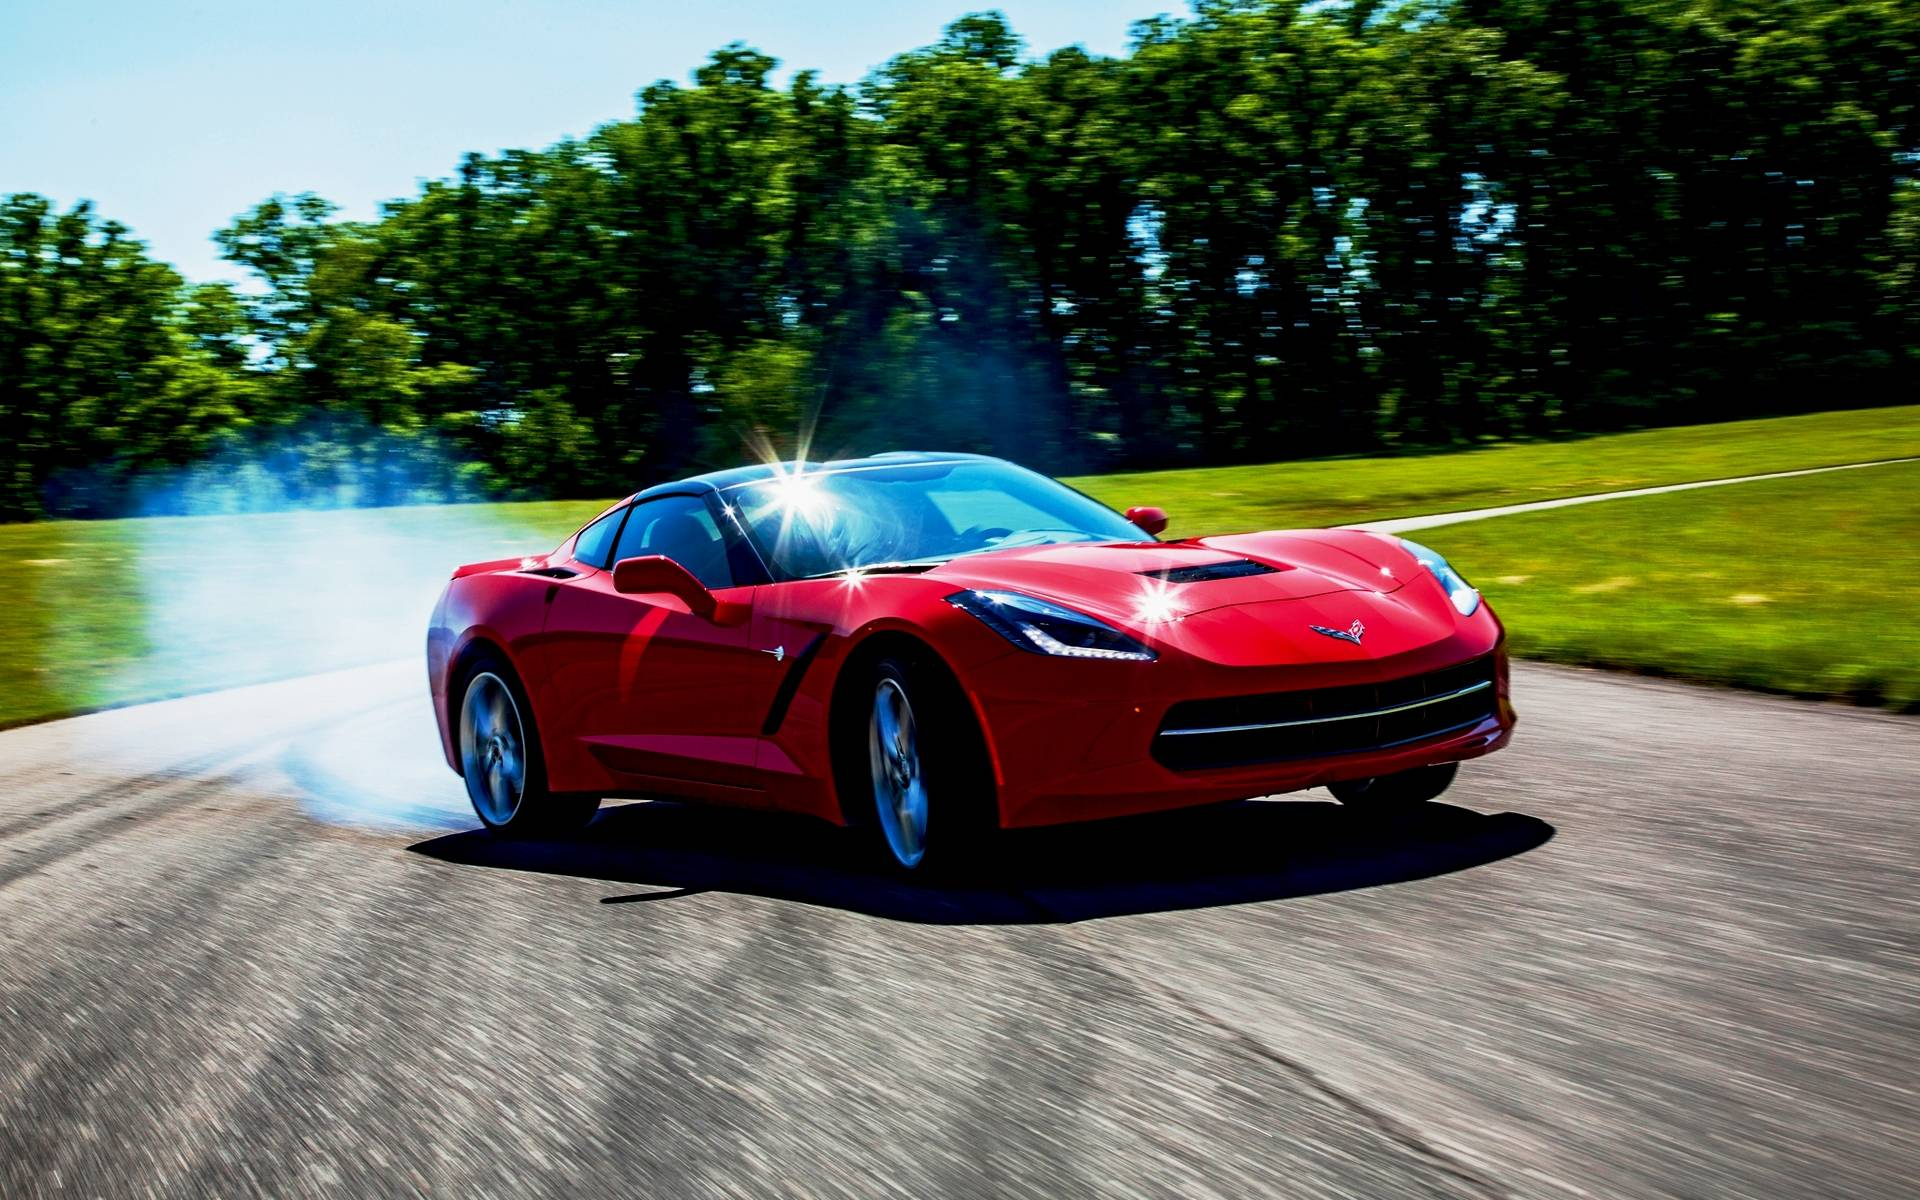 Corvette Stingray 2015 Wallpapers HD